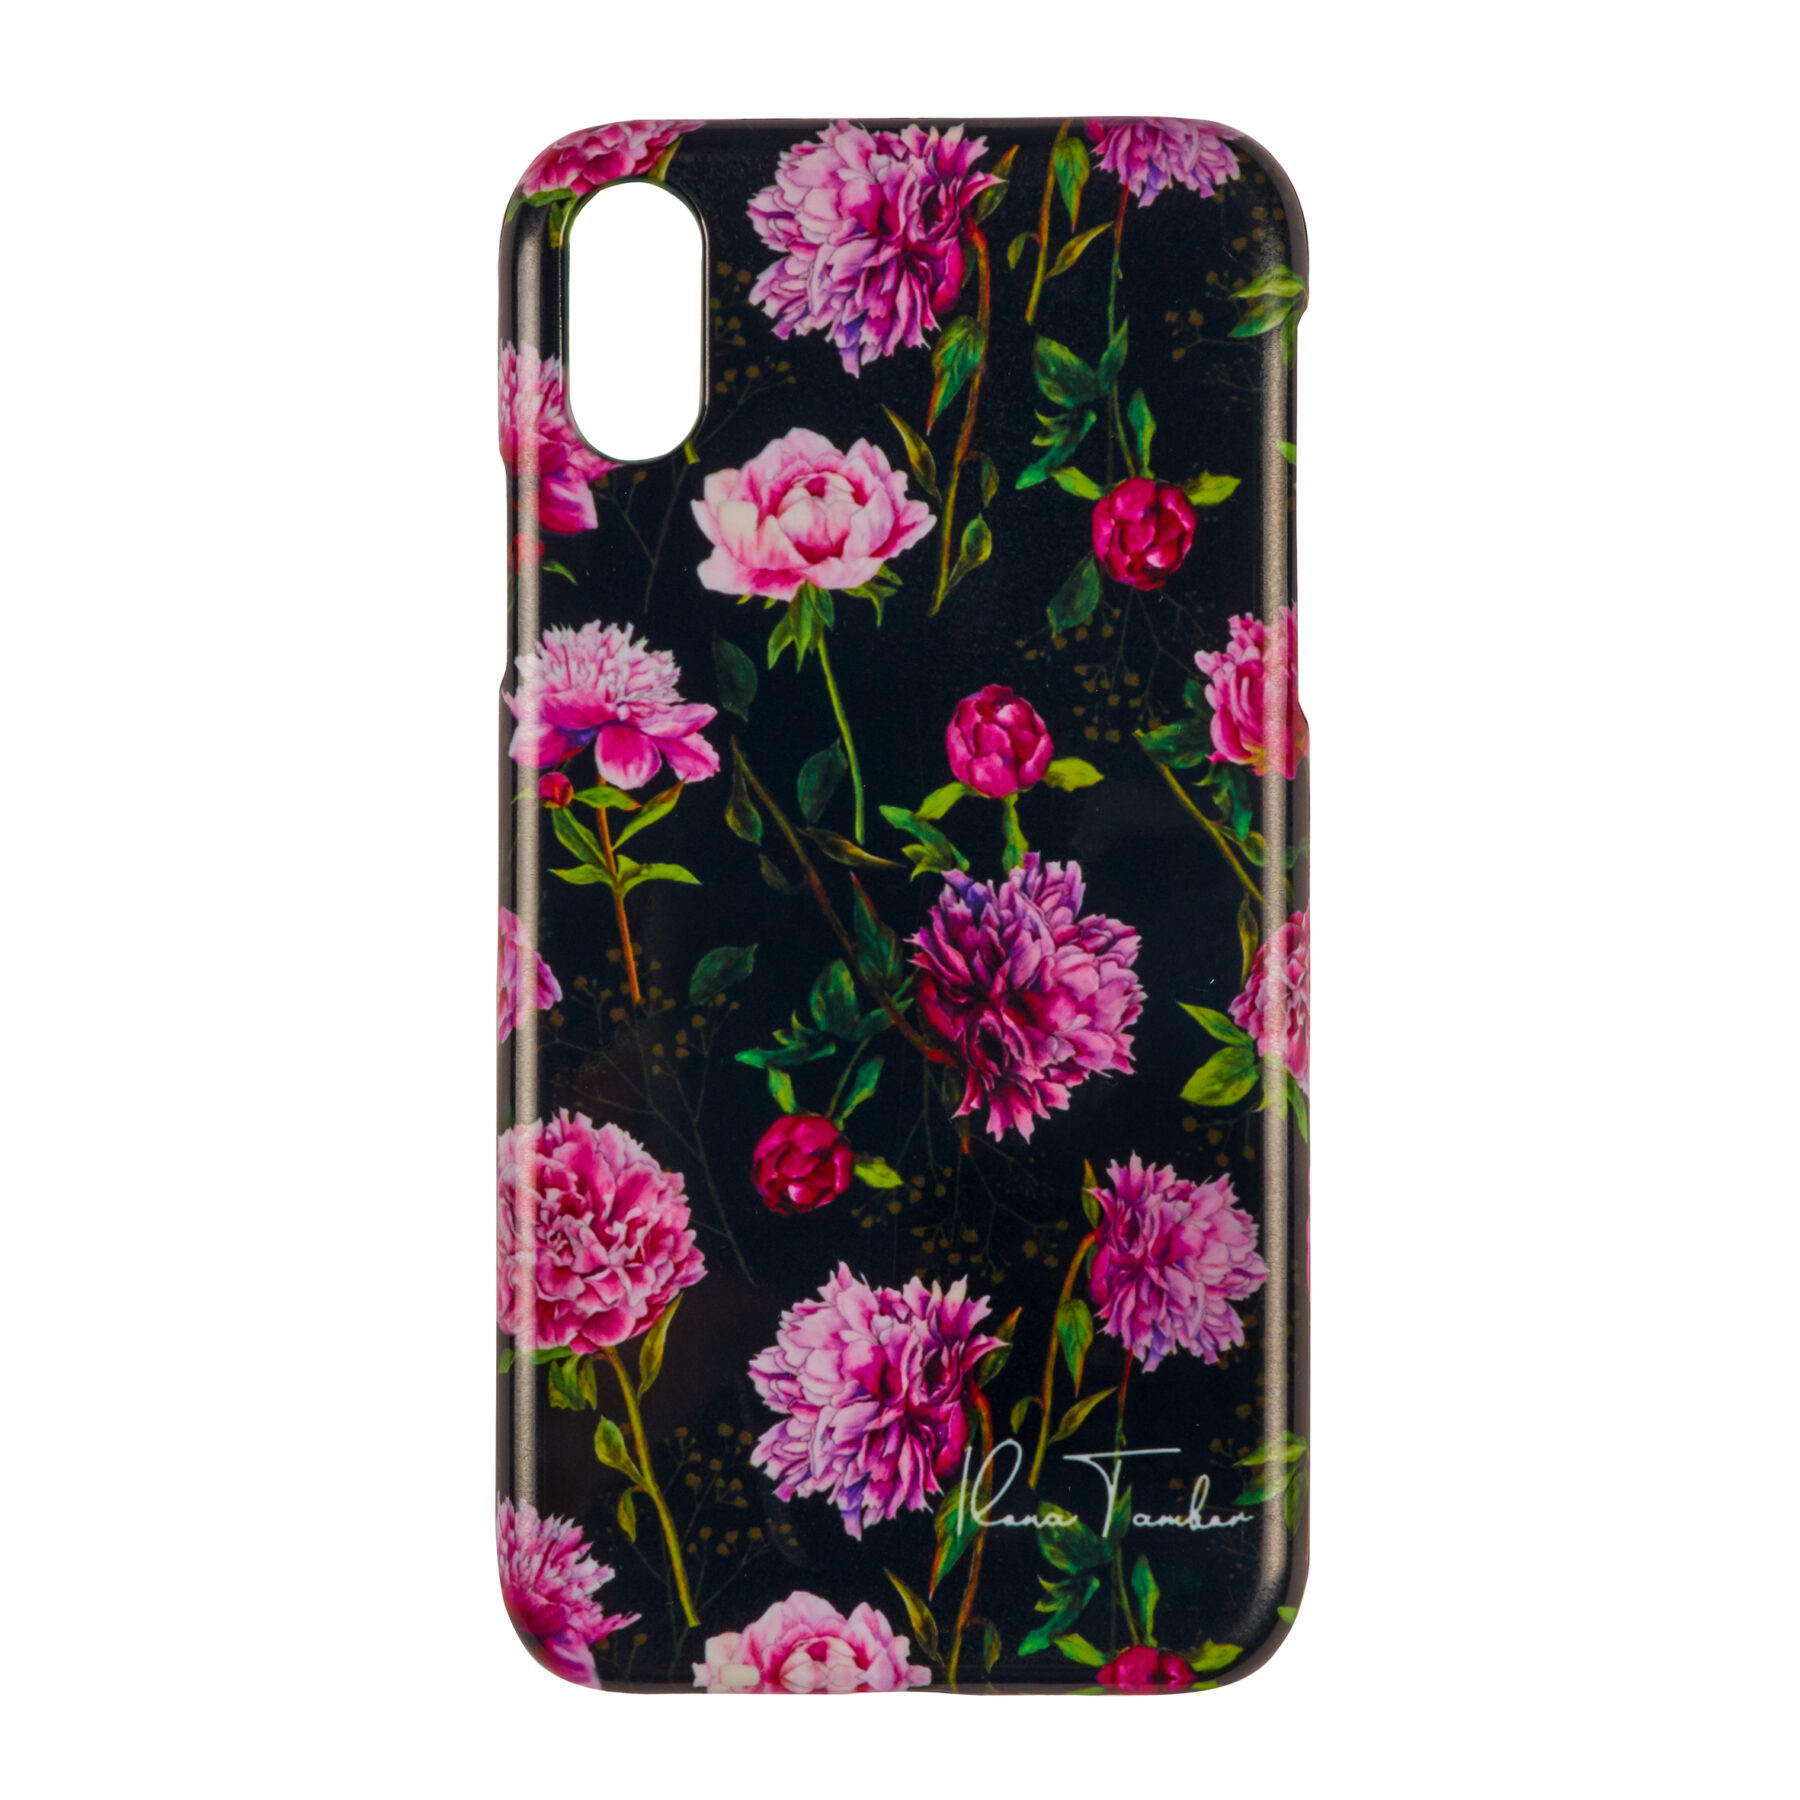 iphone case Peonies Ilona Tambor